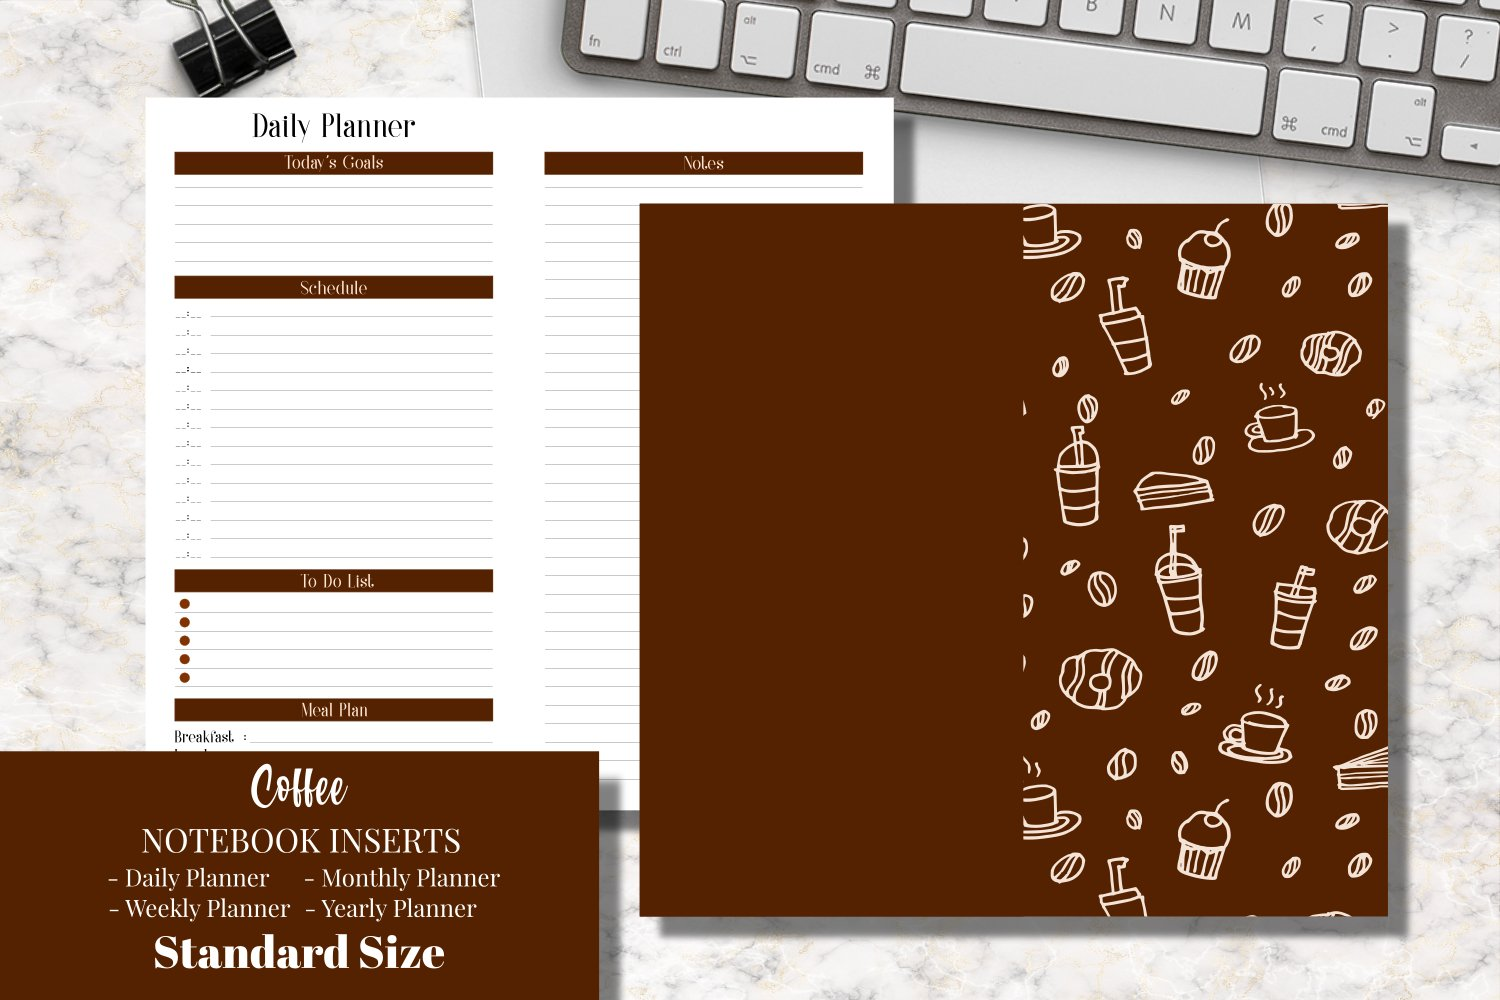 Coffee Standard Size Notebook Inserts Planner example image 1